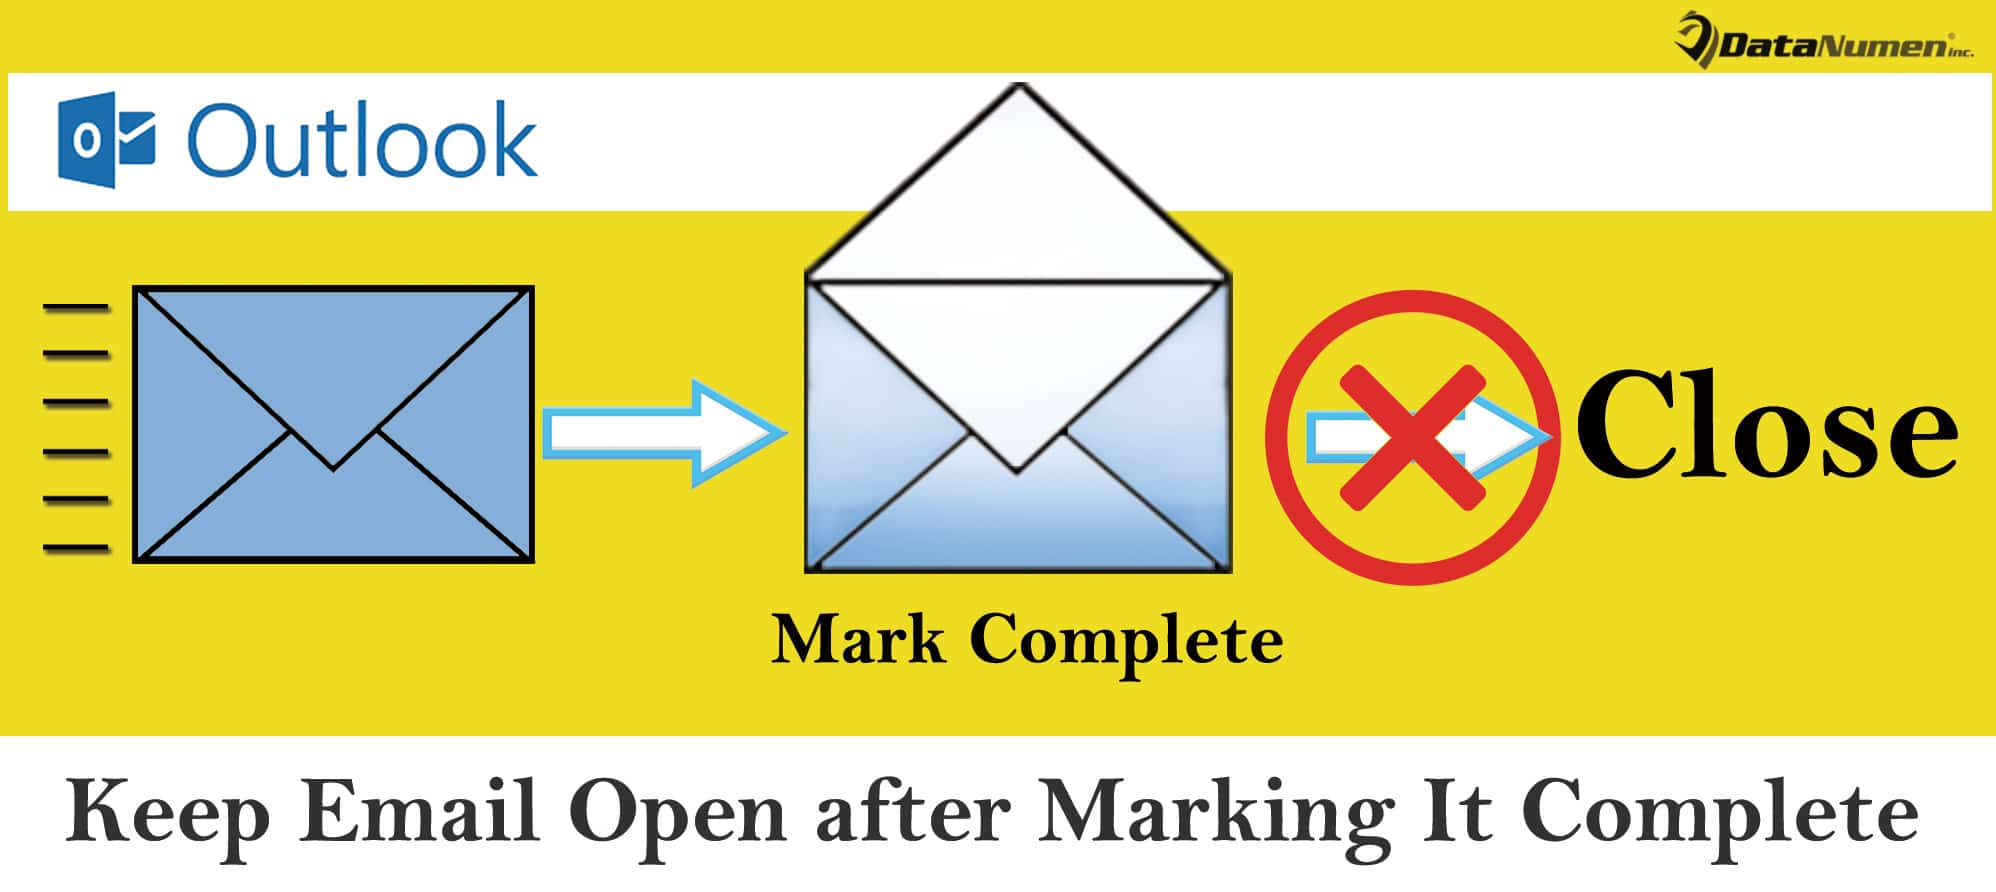 Keep an Email Open after Marking It Complete in Your Outlook